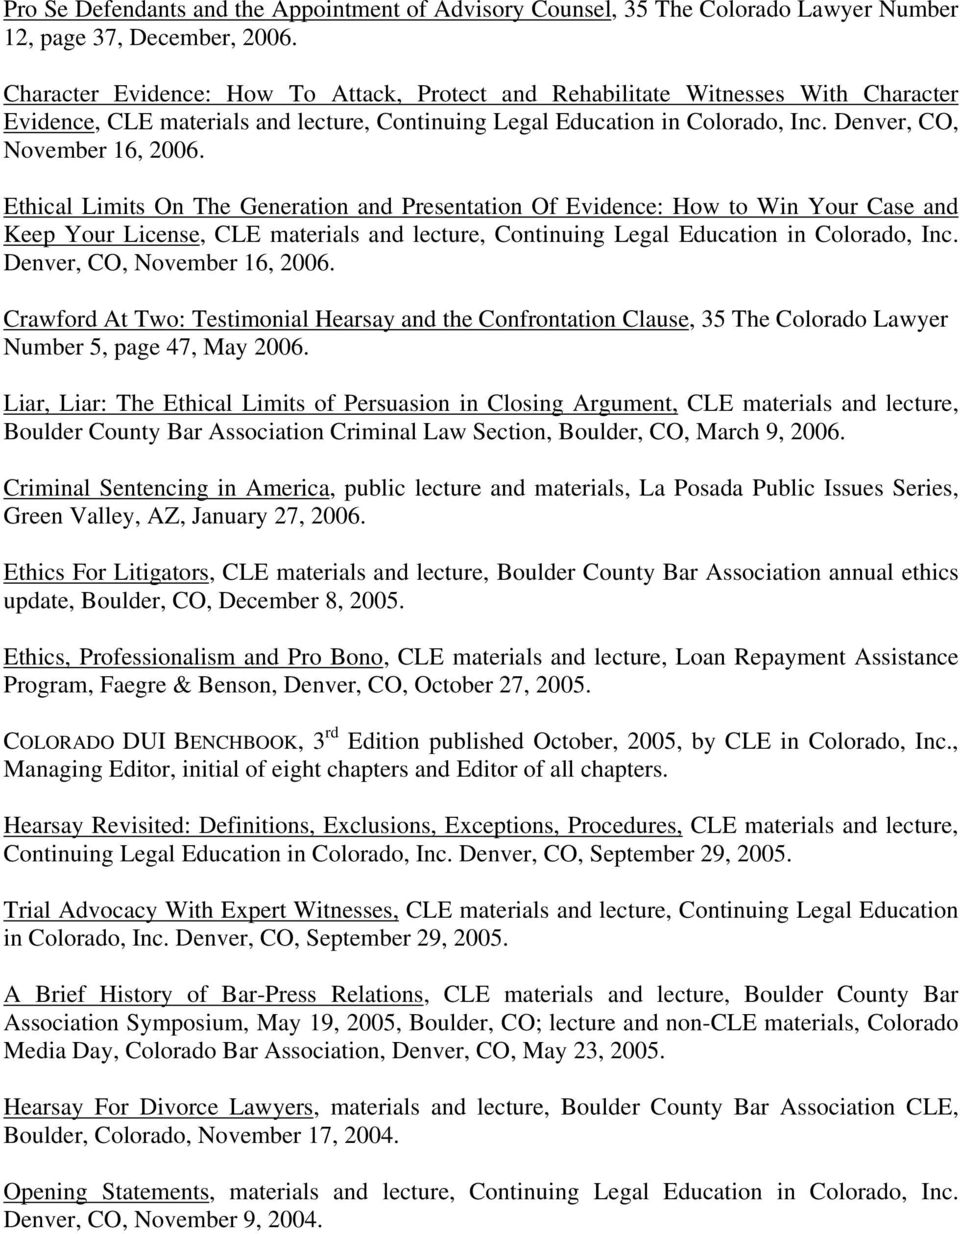 Ethical Limits On The Generation and Presentation Of Evidence: How to Win Your Case and Keep Your License, CLE materials and lecture, Continuing Legal Education in Colorado, Inc.